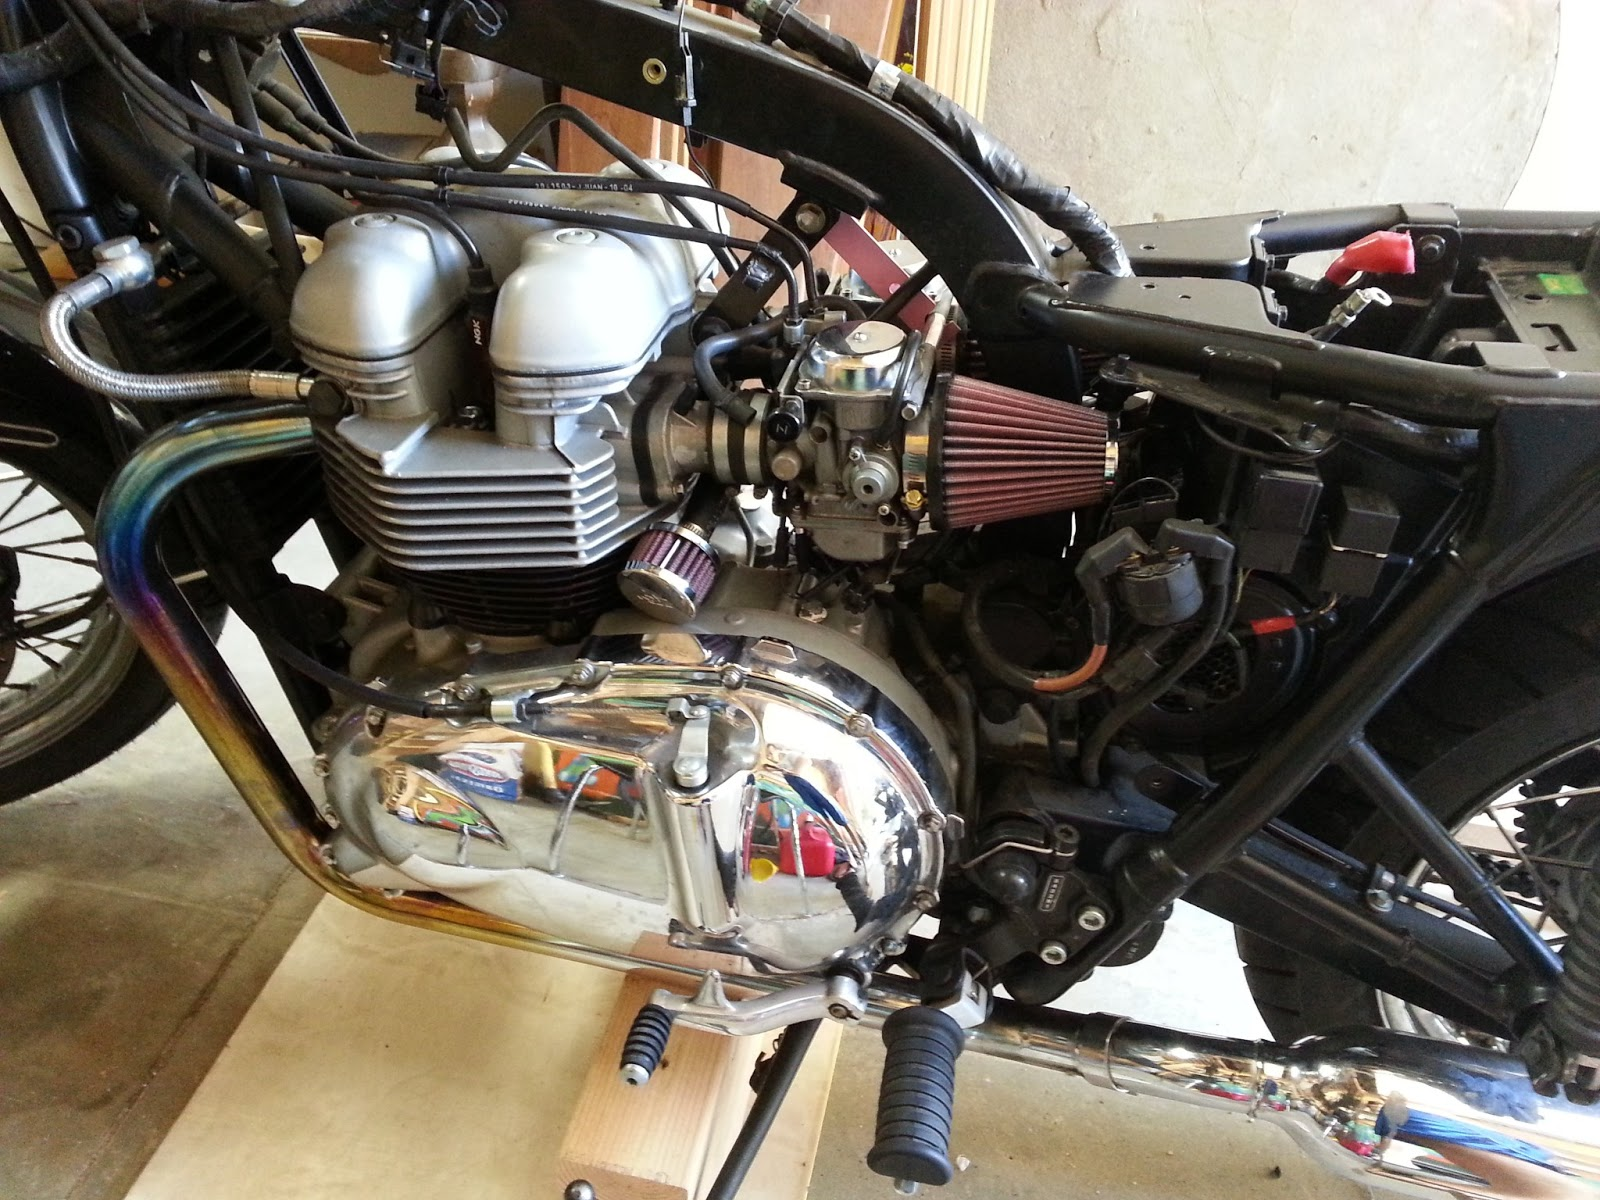 dkudrow: triumph bonneville diy air injection and airbox removal